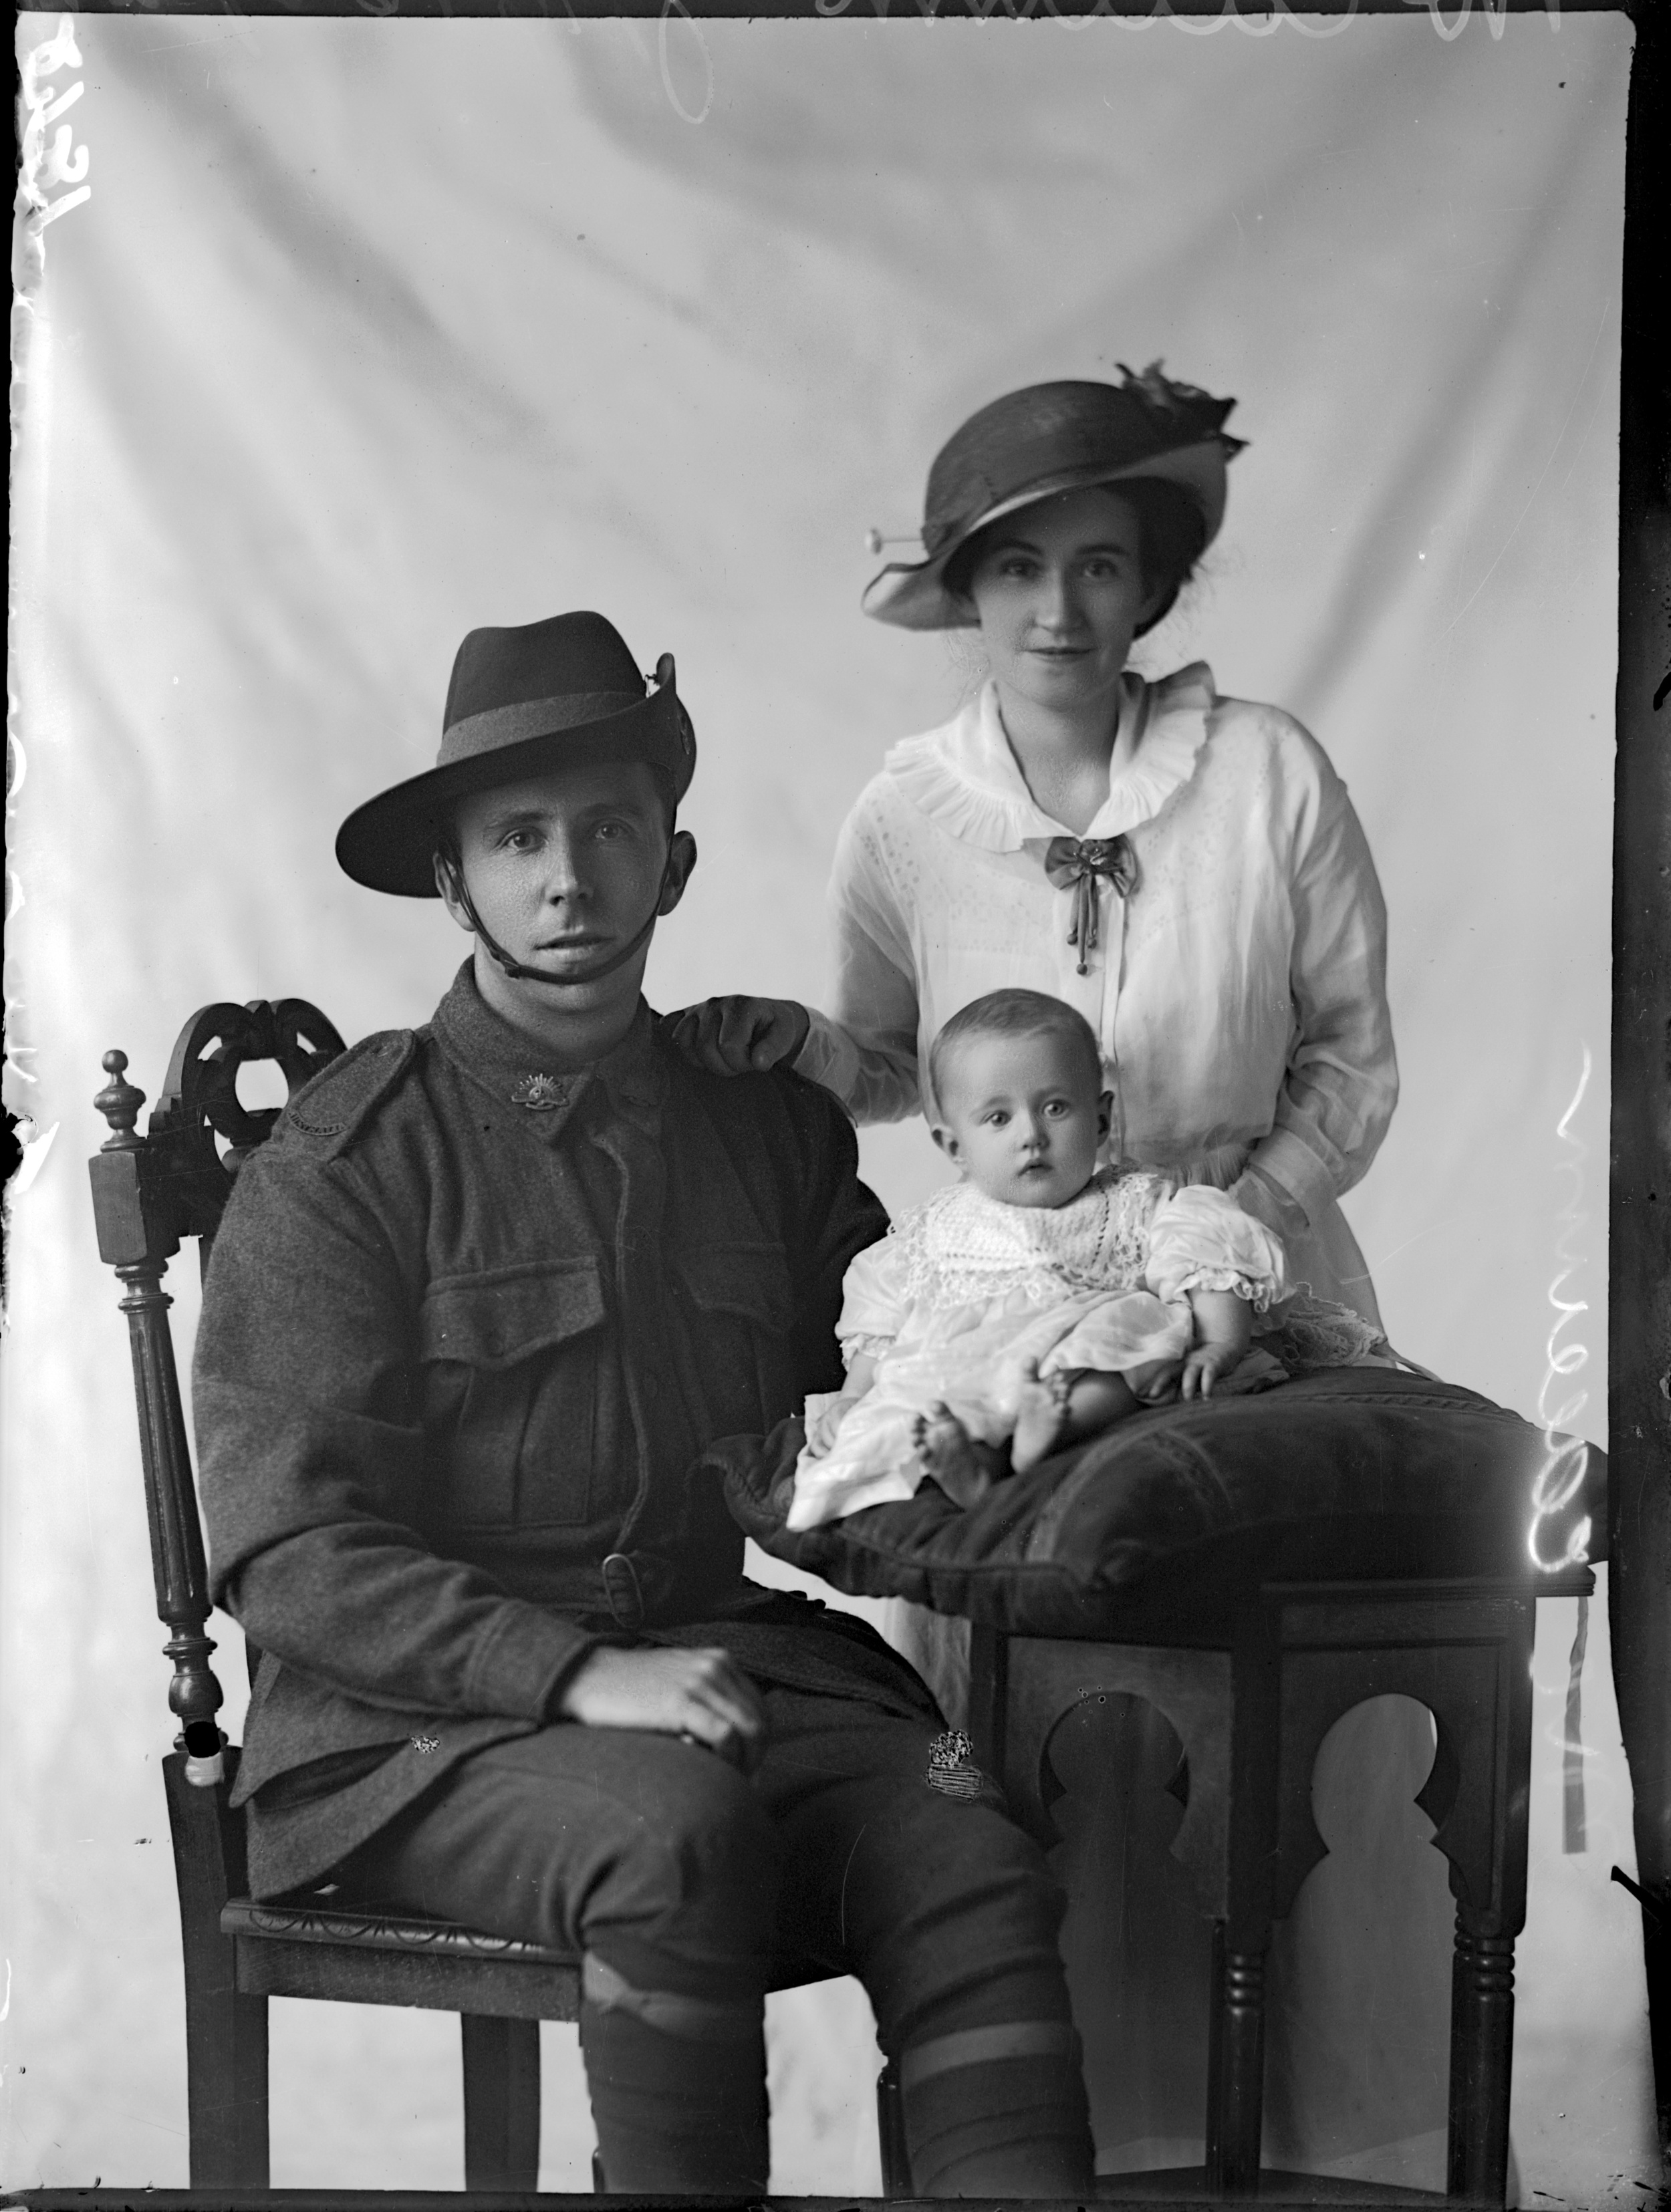 Photographed at the Dease Studio, 117 Barrack Street Perth WA Image courtesy of the State Library of Western Australia: 150084PD